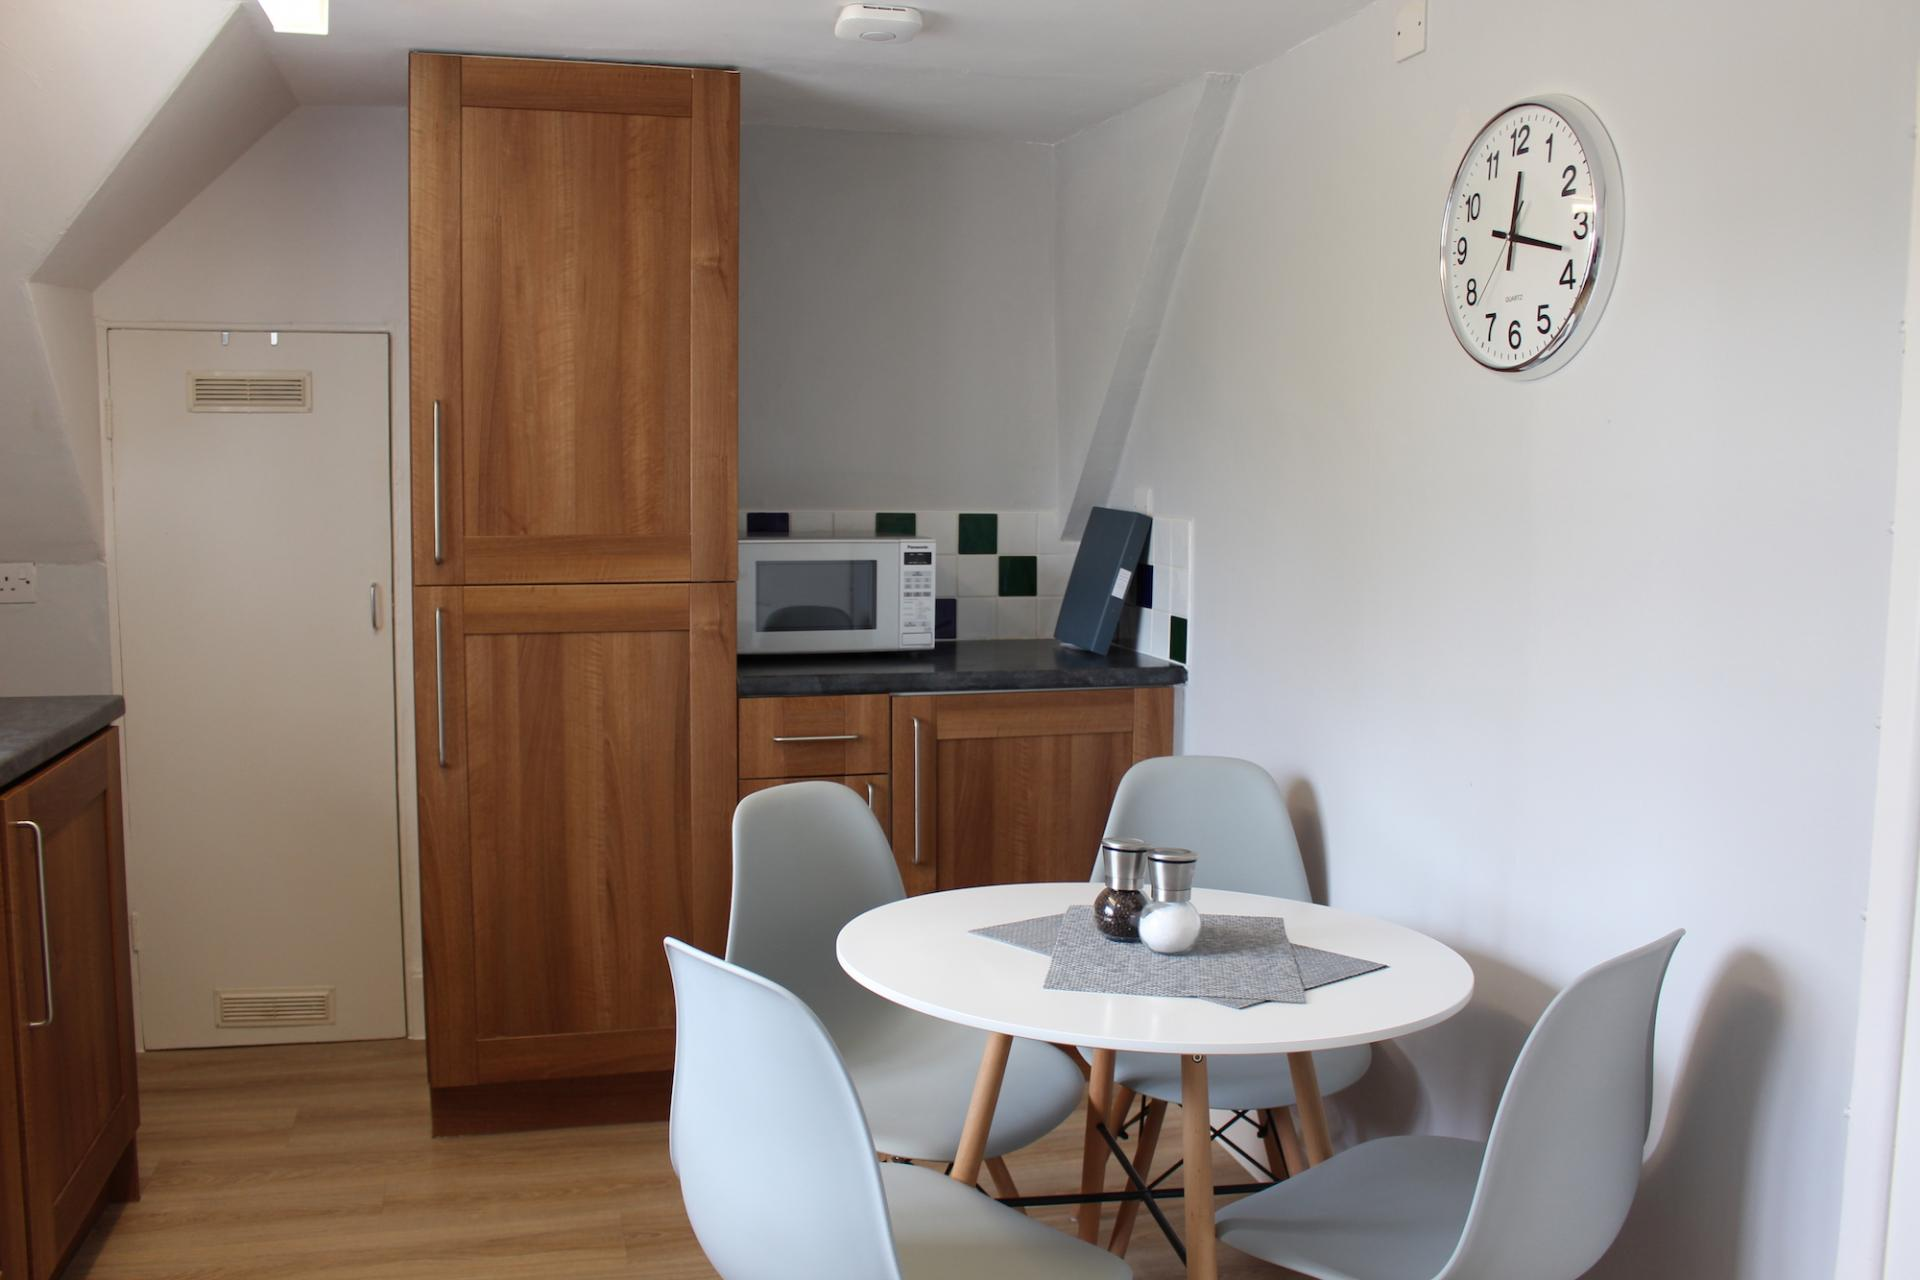 Dining area at Chilton Serviced Apartments